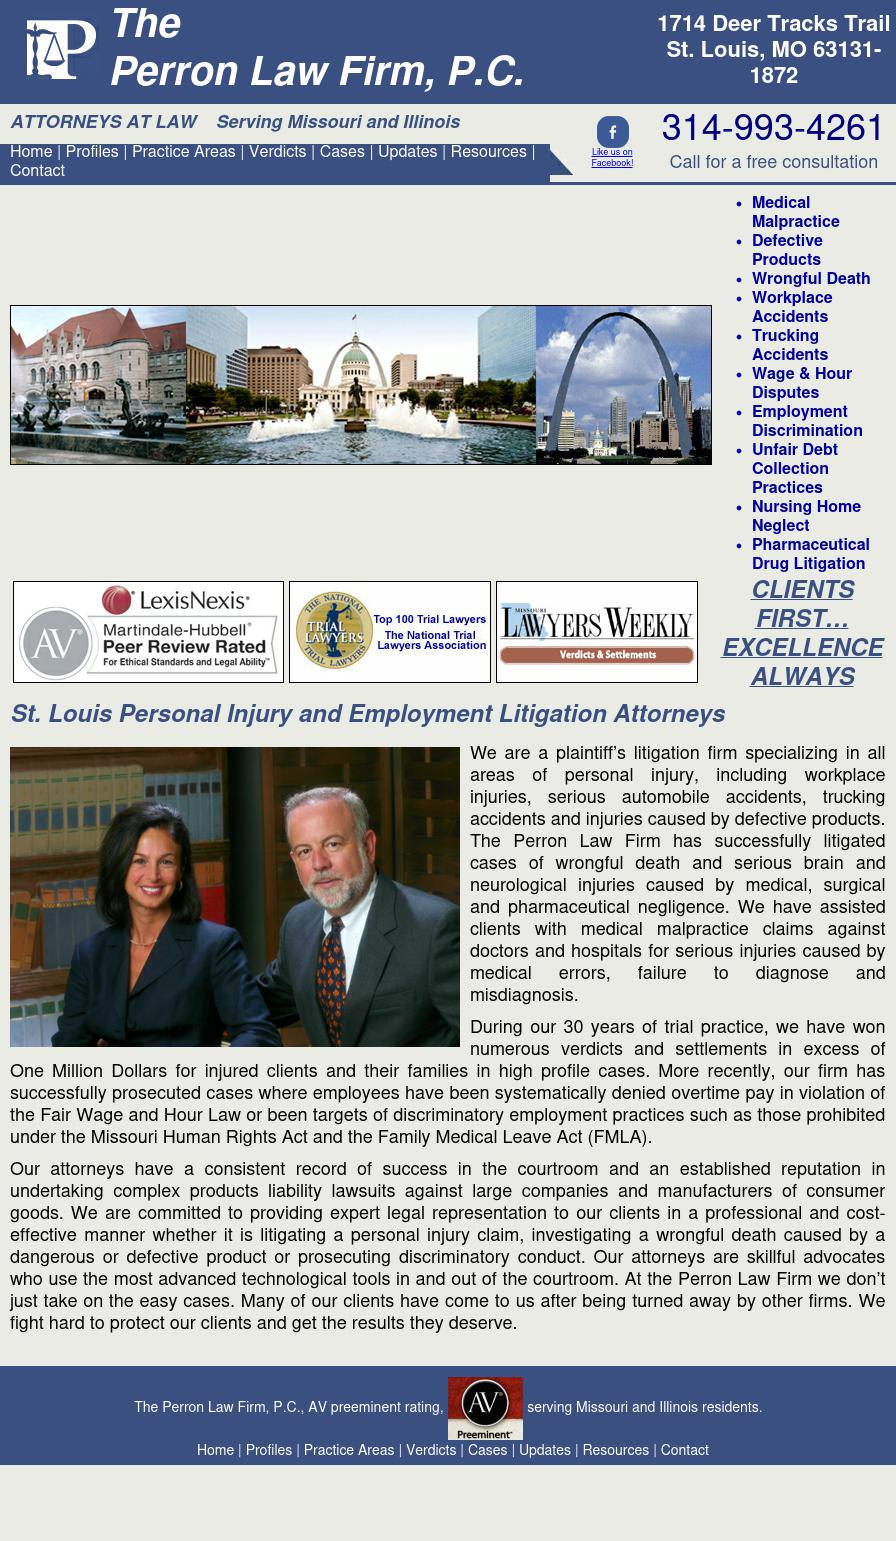 The Perron Law Firm, P.C. - St. Louis MO Lawyers